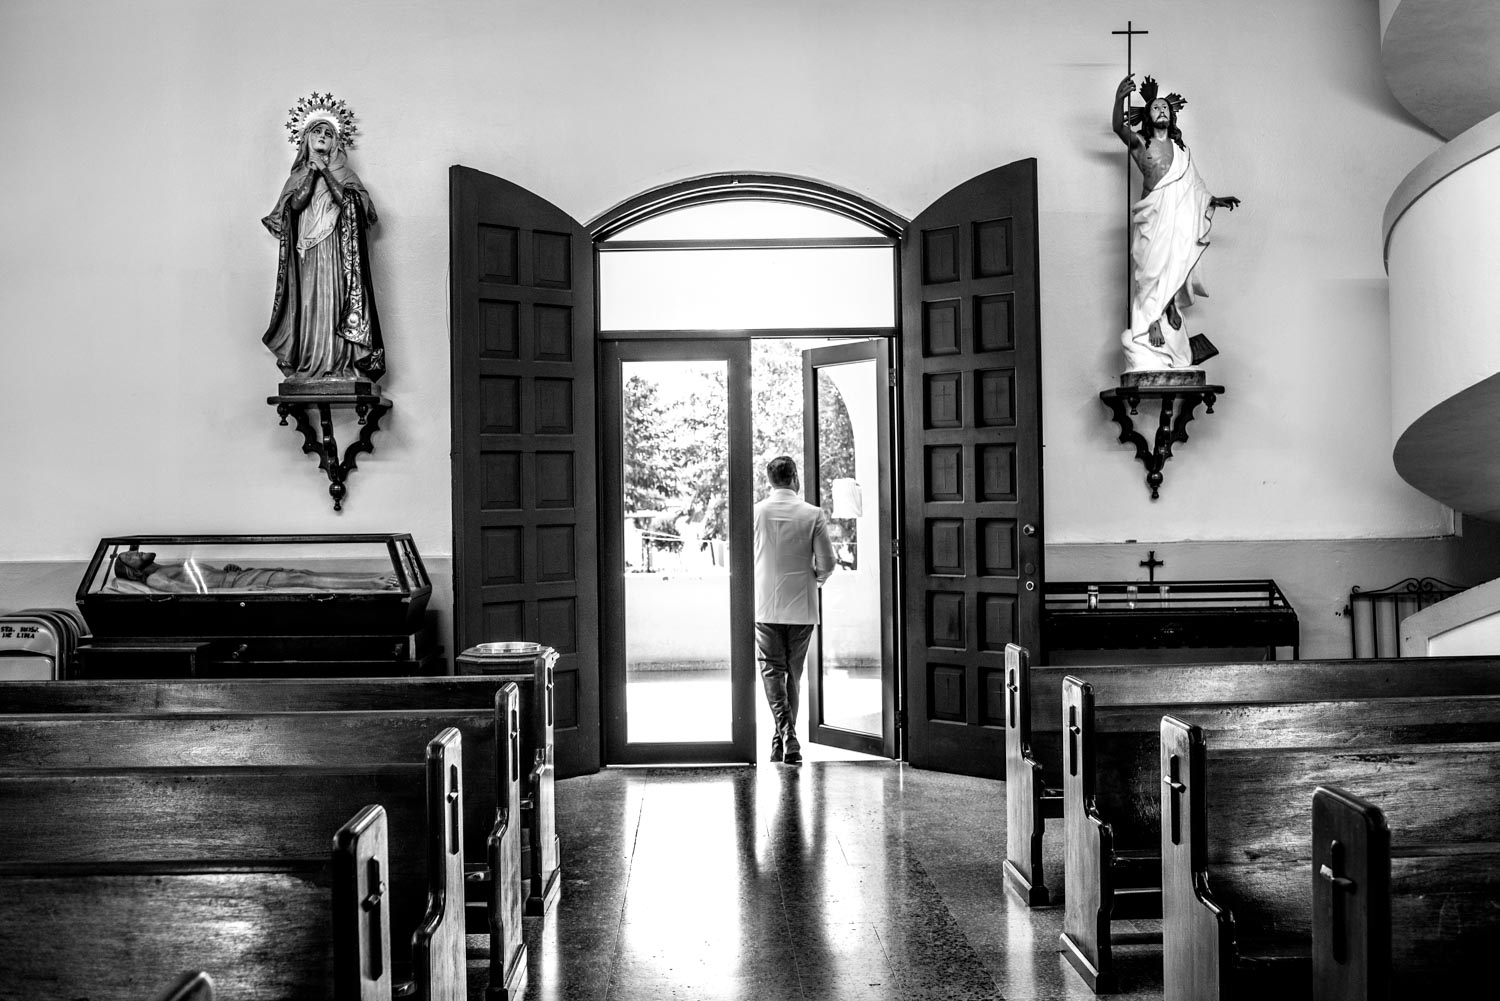 Black and white photograph of the groom going out the church doors. The two icons of the virgin mary and jesus christ are on either side of the doors.